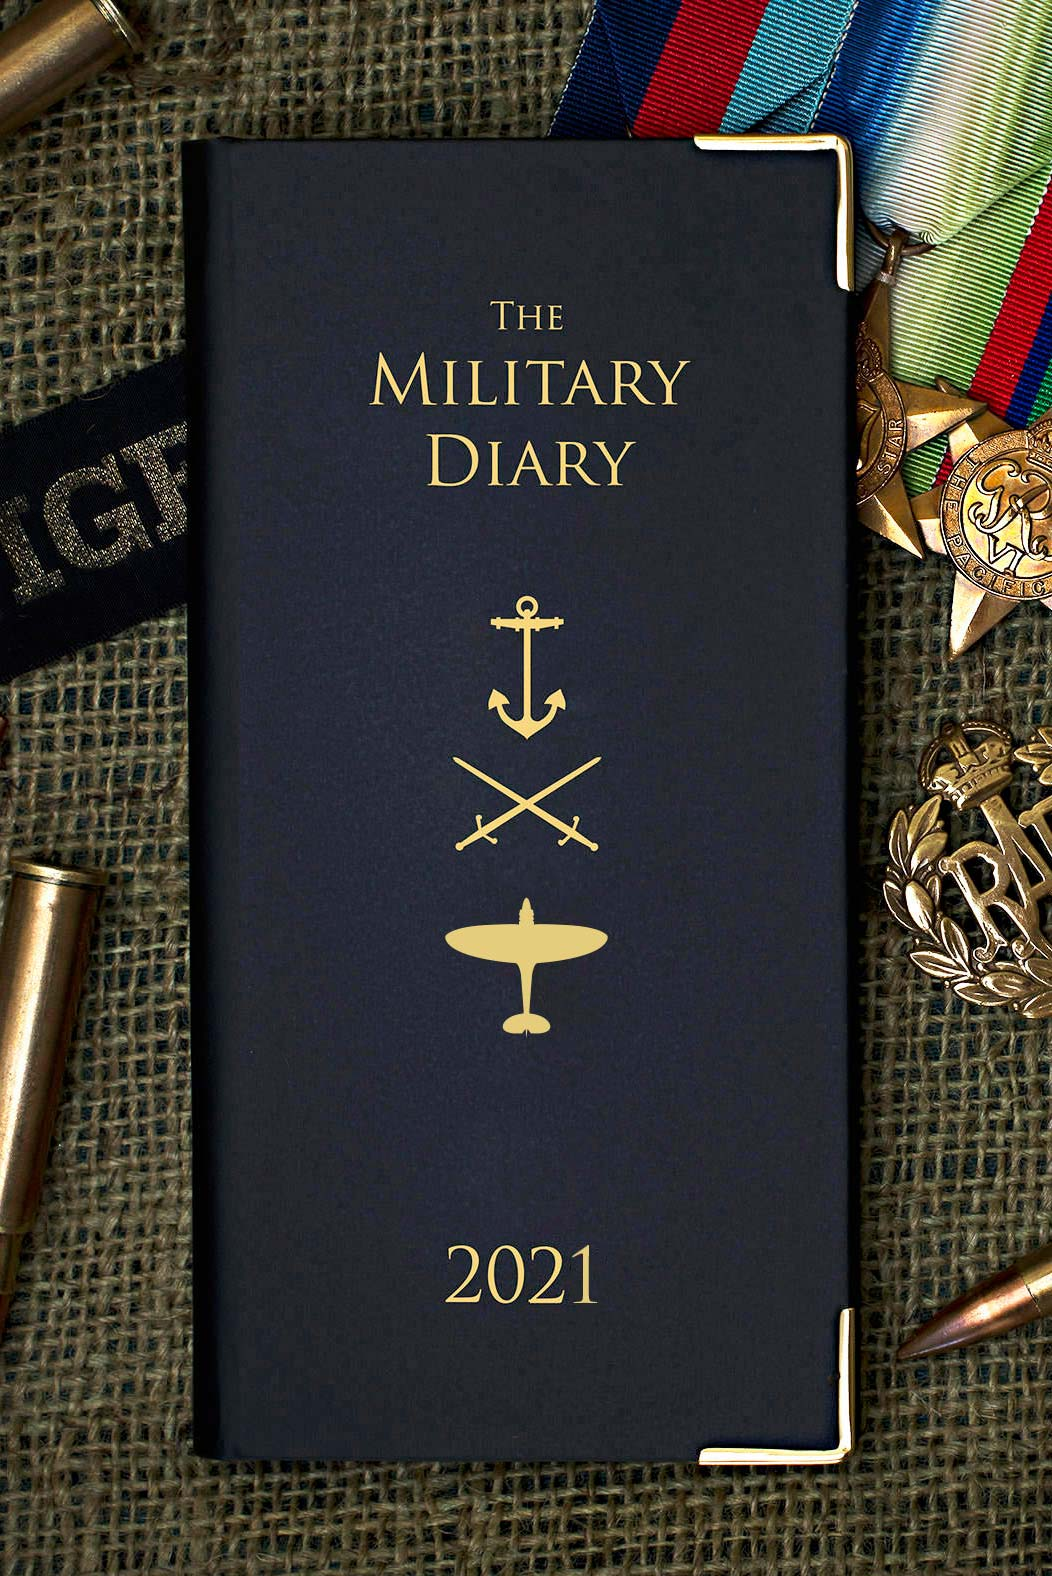 The Military Diary 2021